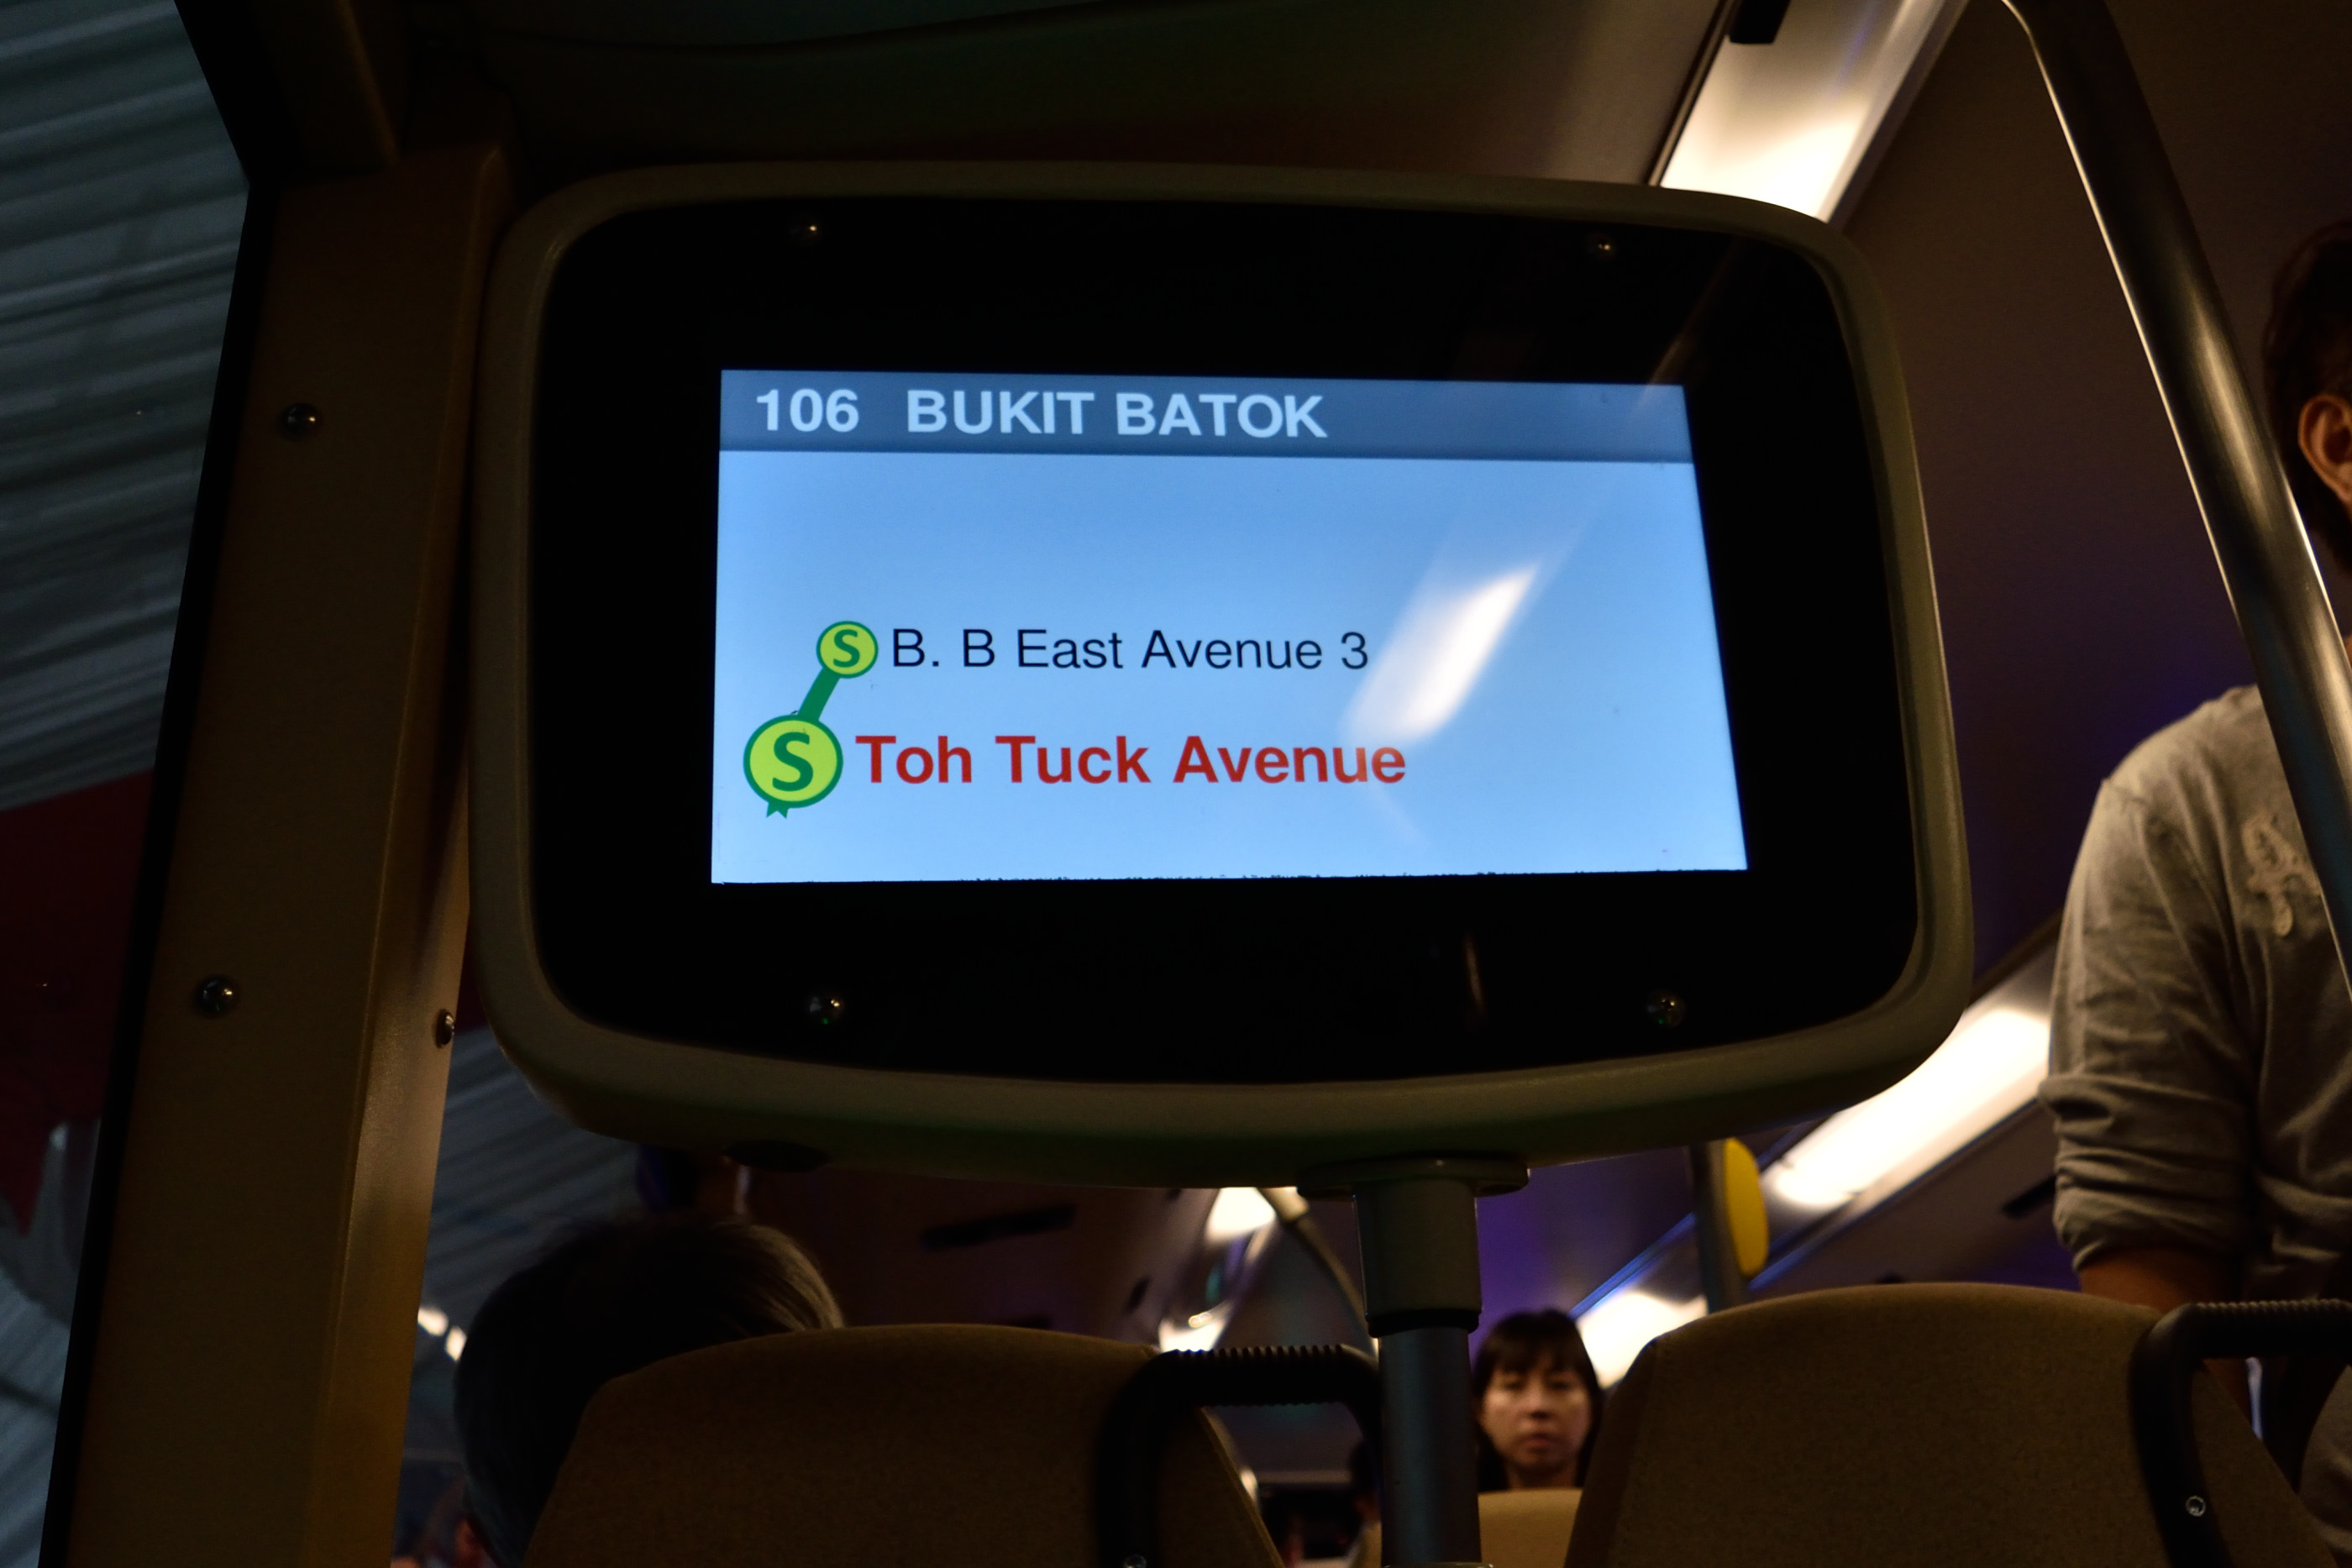 Bus route display.